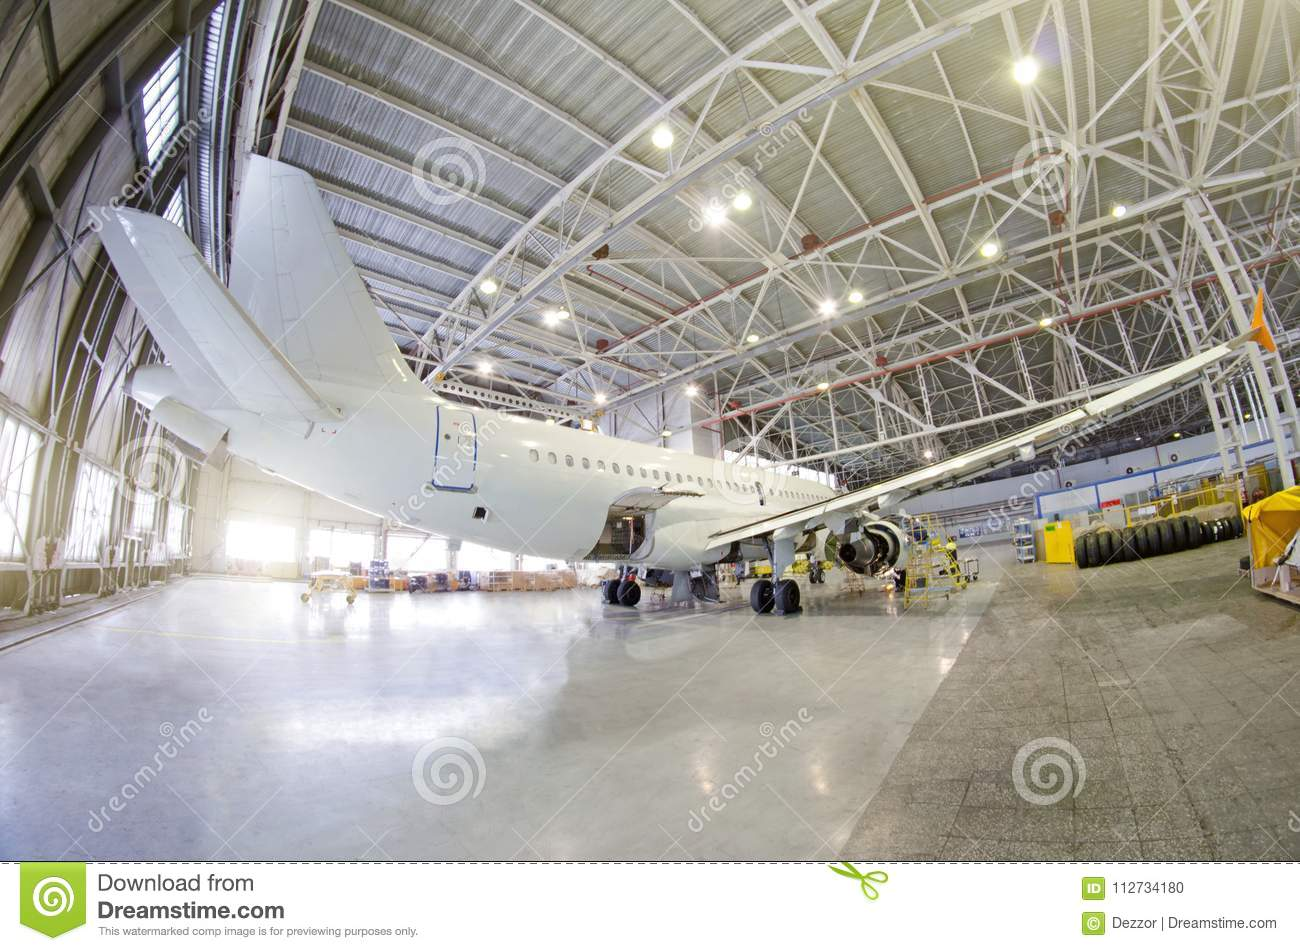 Passenger airplane on maintenance of engine, fuselage and on auxiliary power unit. check repair in airport hangar. Aircraft view t